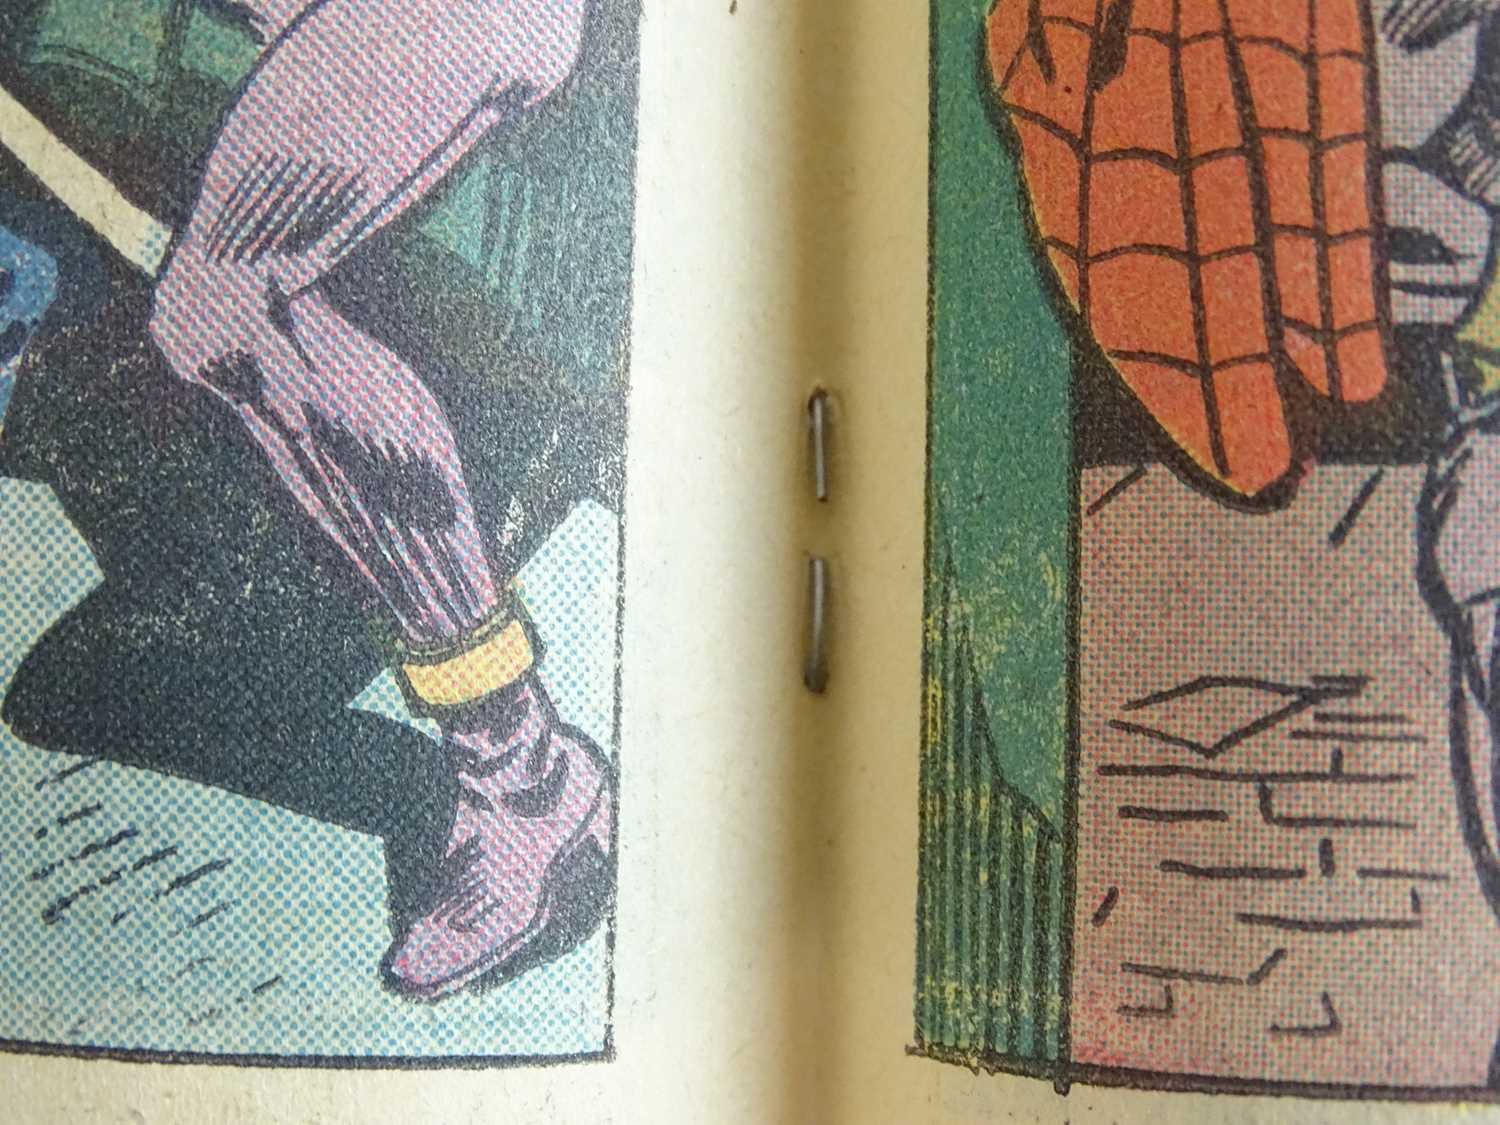 AMAZING SPIDER-MAN #162 - (1976 - MARVEL) - First full appearance of Jigsaw and Dr. Maria - Image 7 of 9